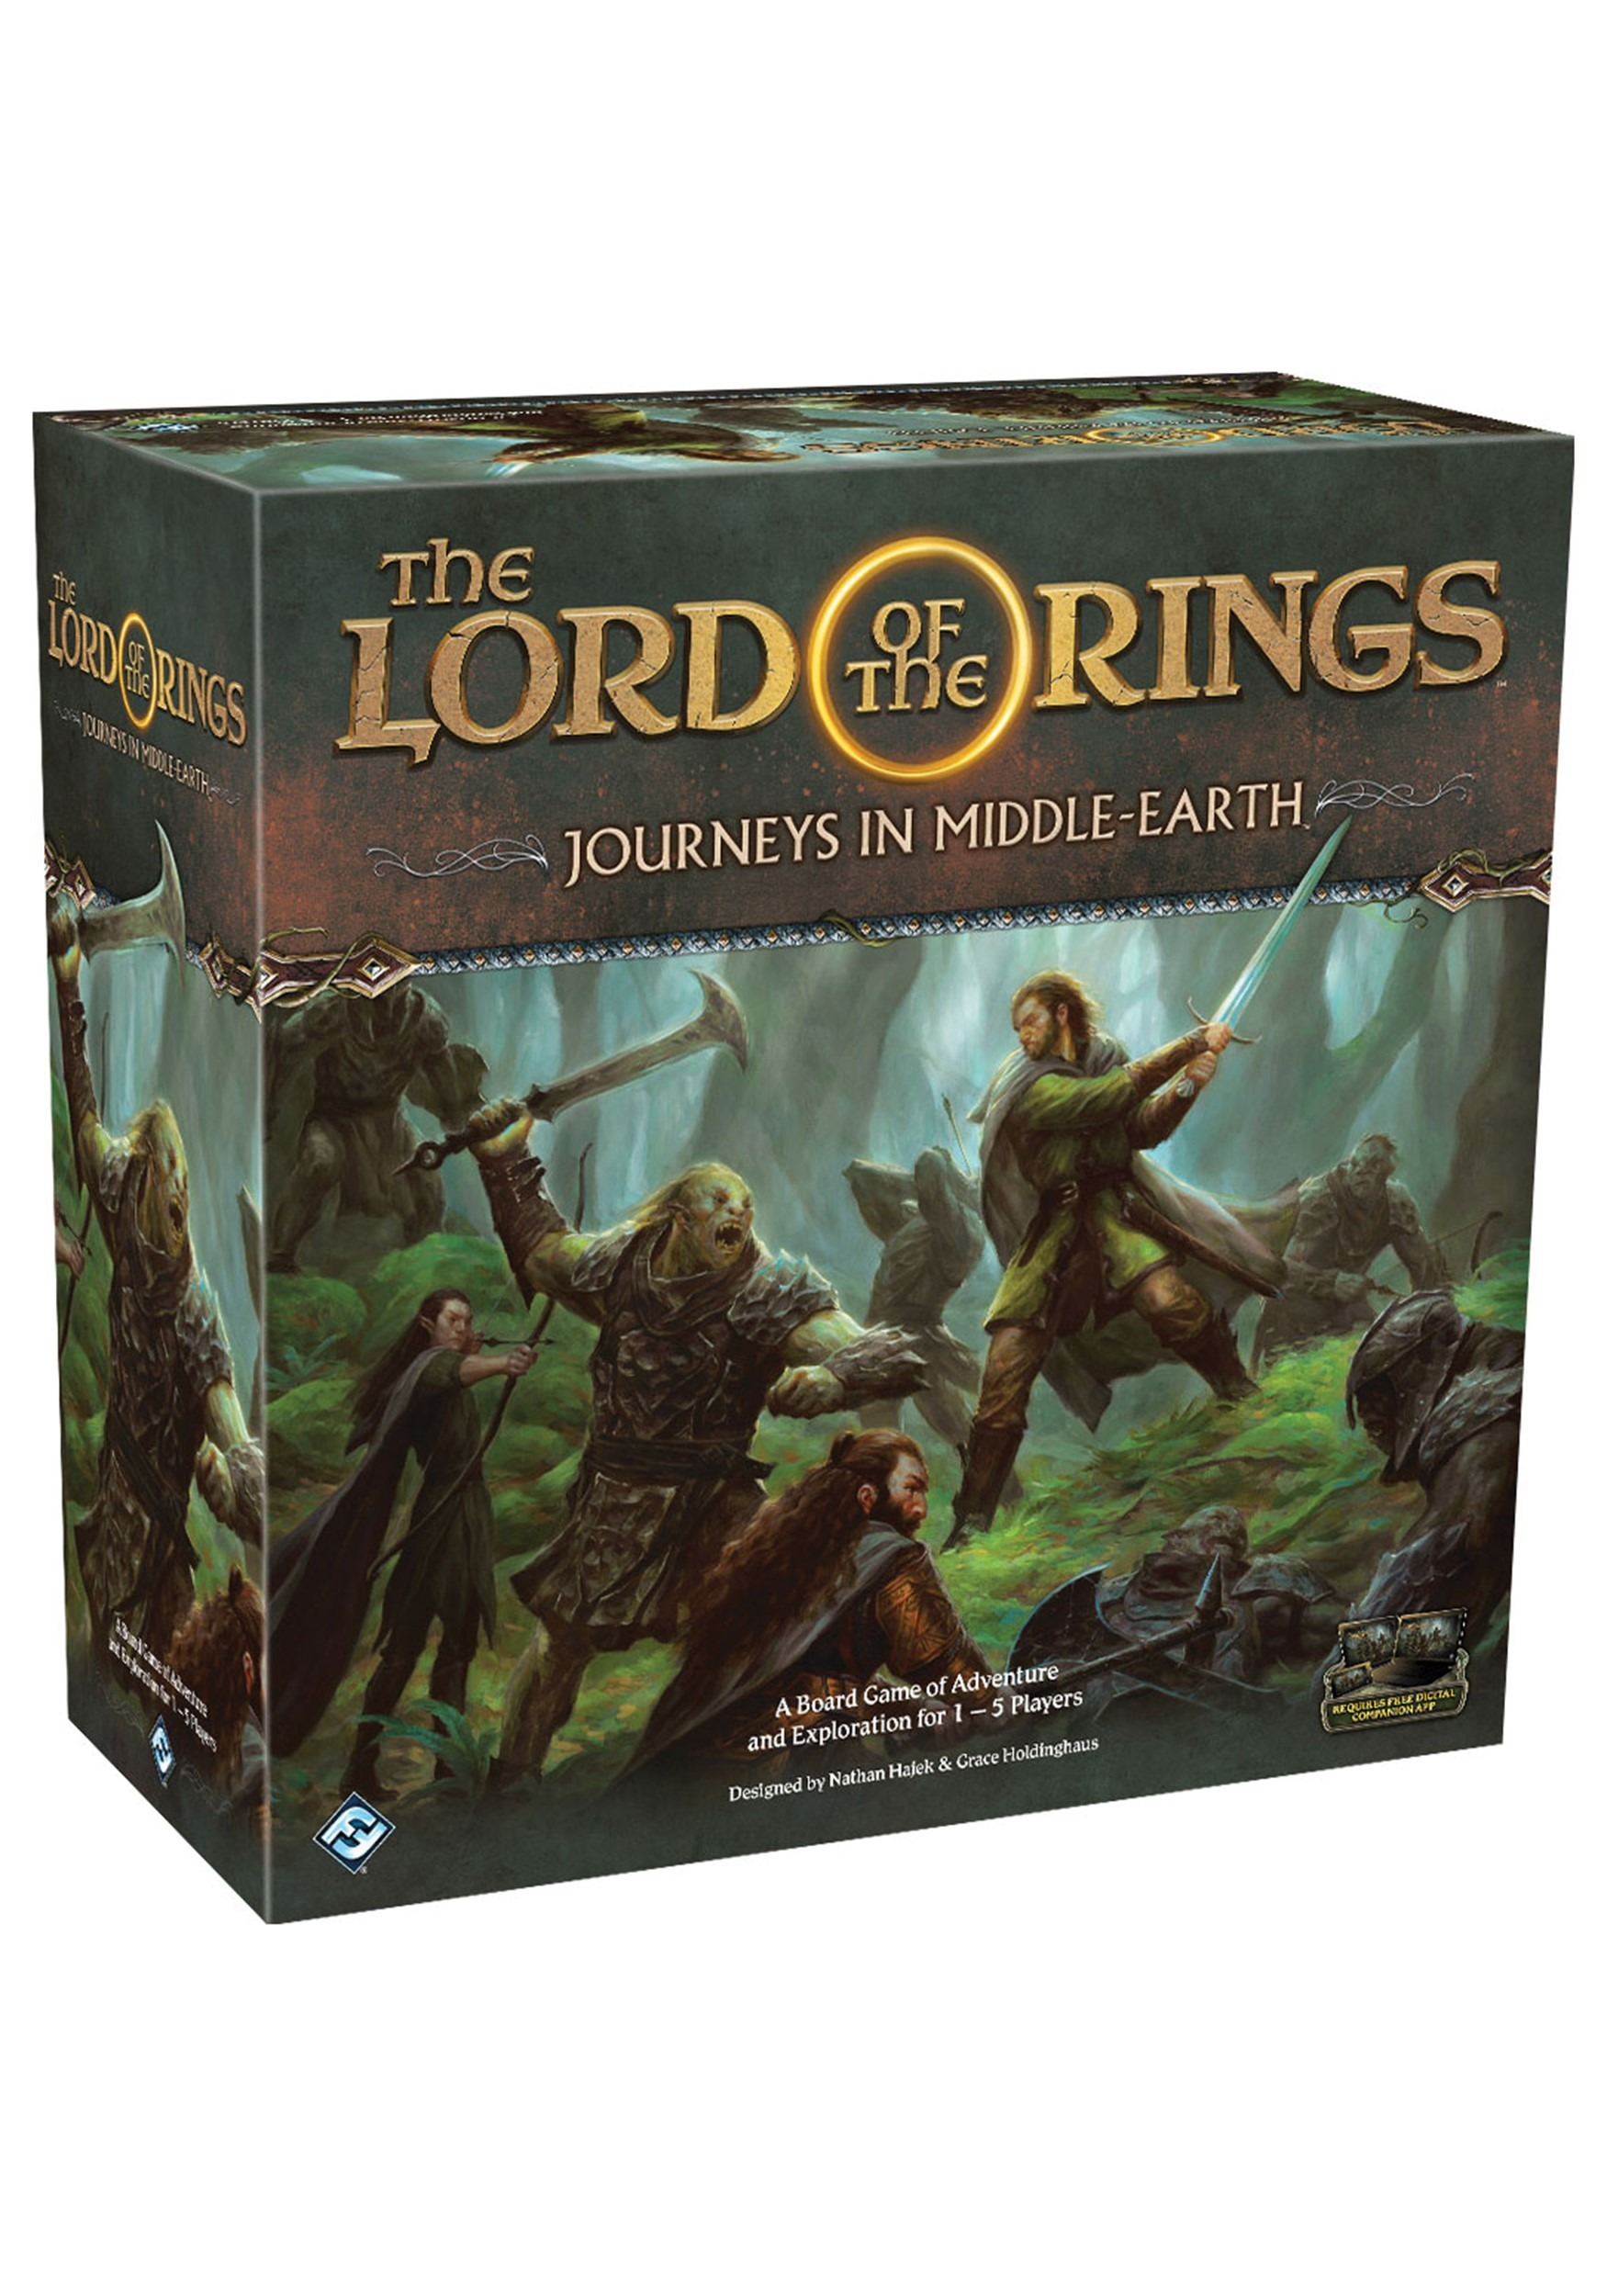 The_Lord_of_the_Rings:_Journeys_in_Middle-Earth_Board_Game_1-5_Players